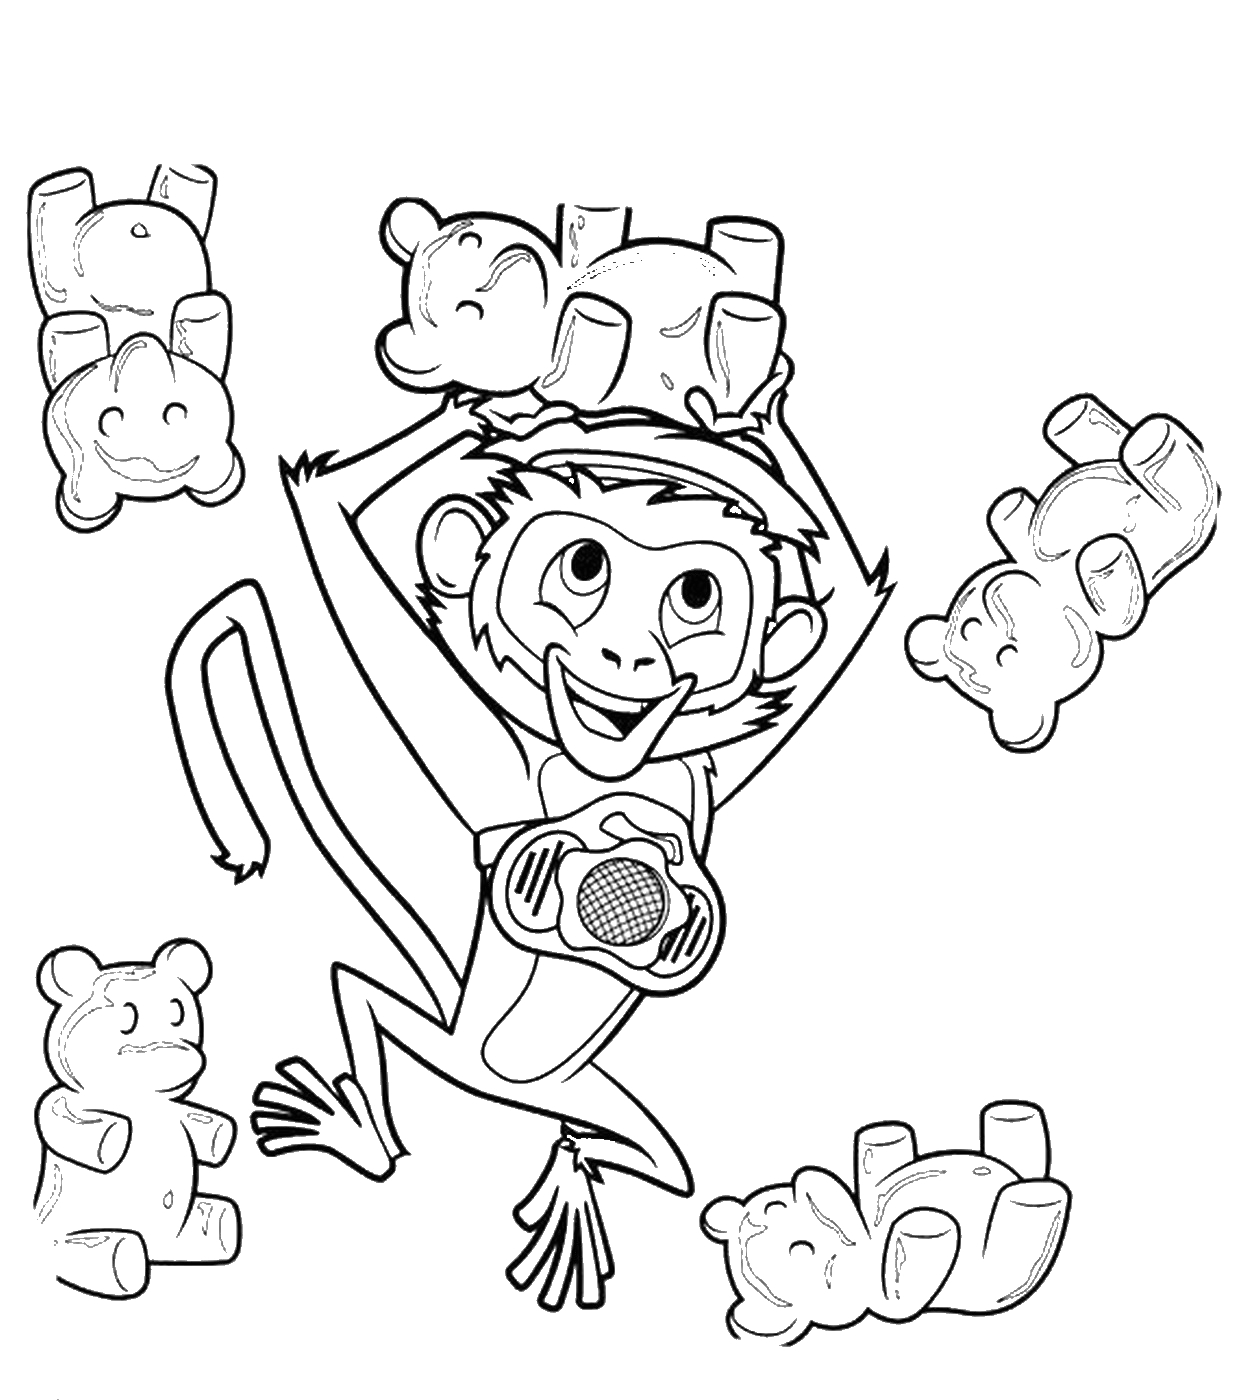 Coloring Pages Of Cloudy with A Chance Of Meatballs Cloudy with A Chance Of Meatballs Coloring Pages